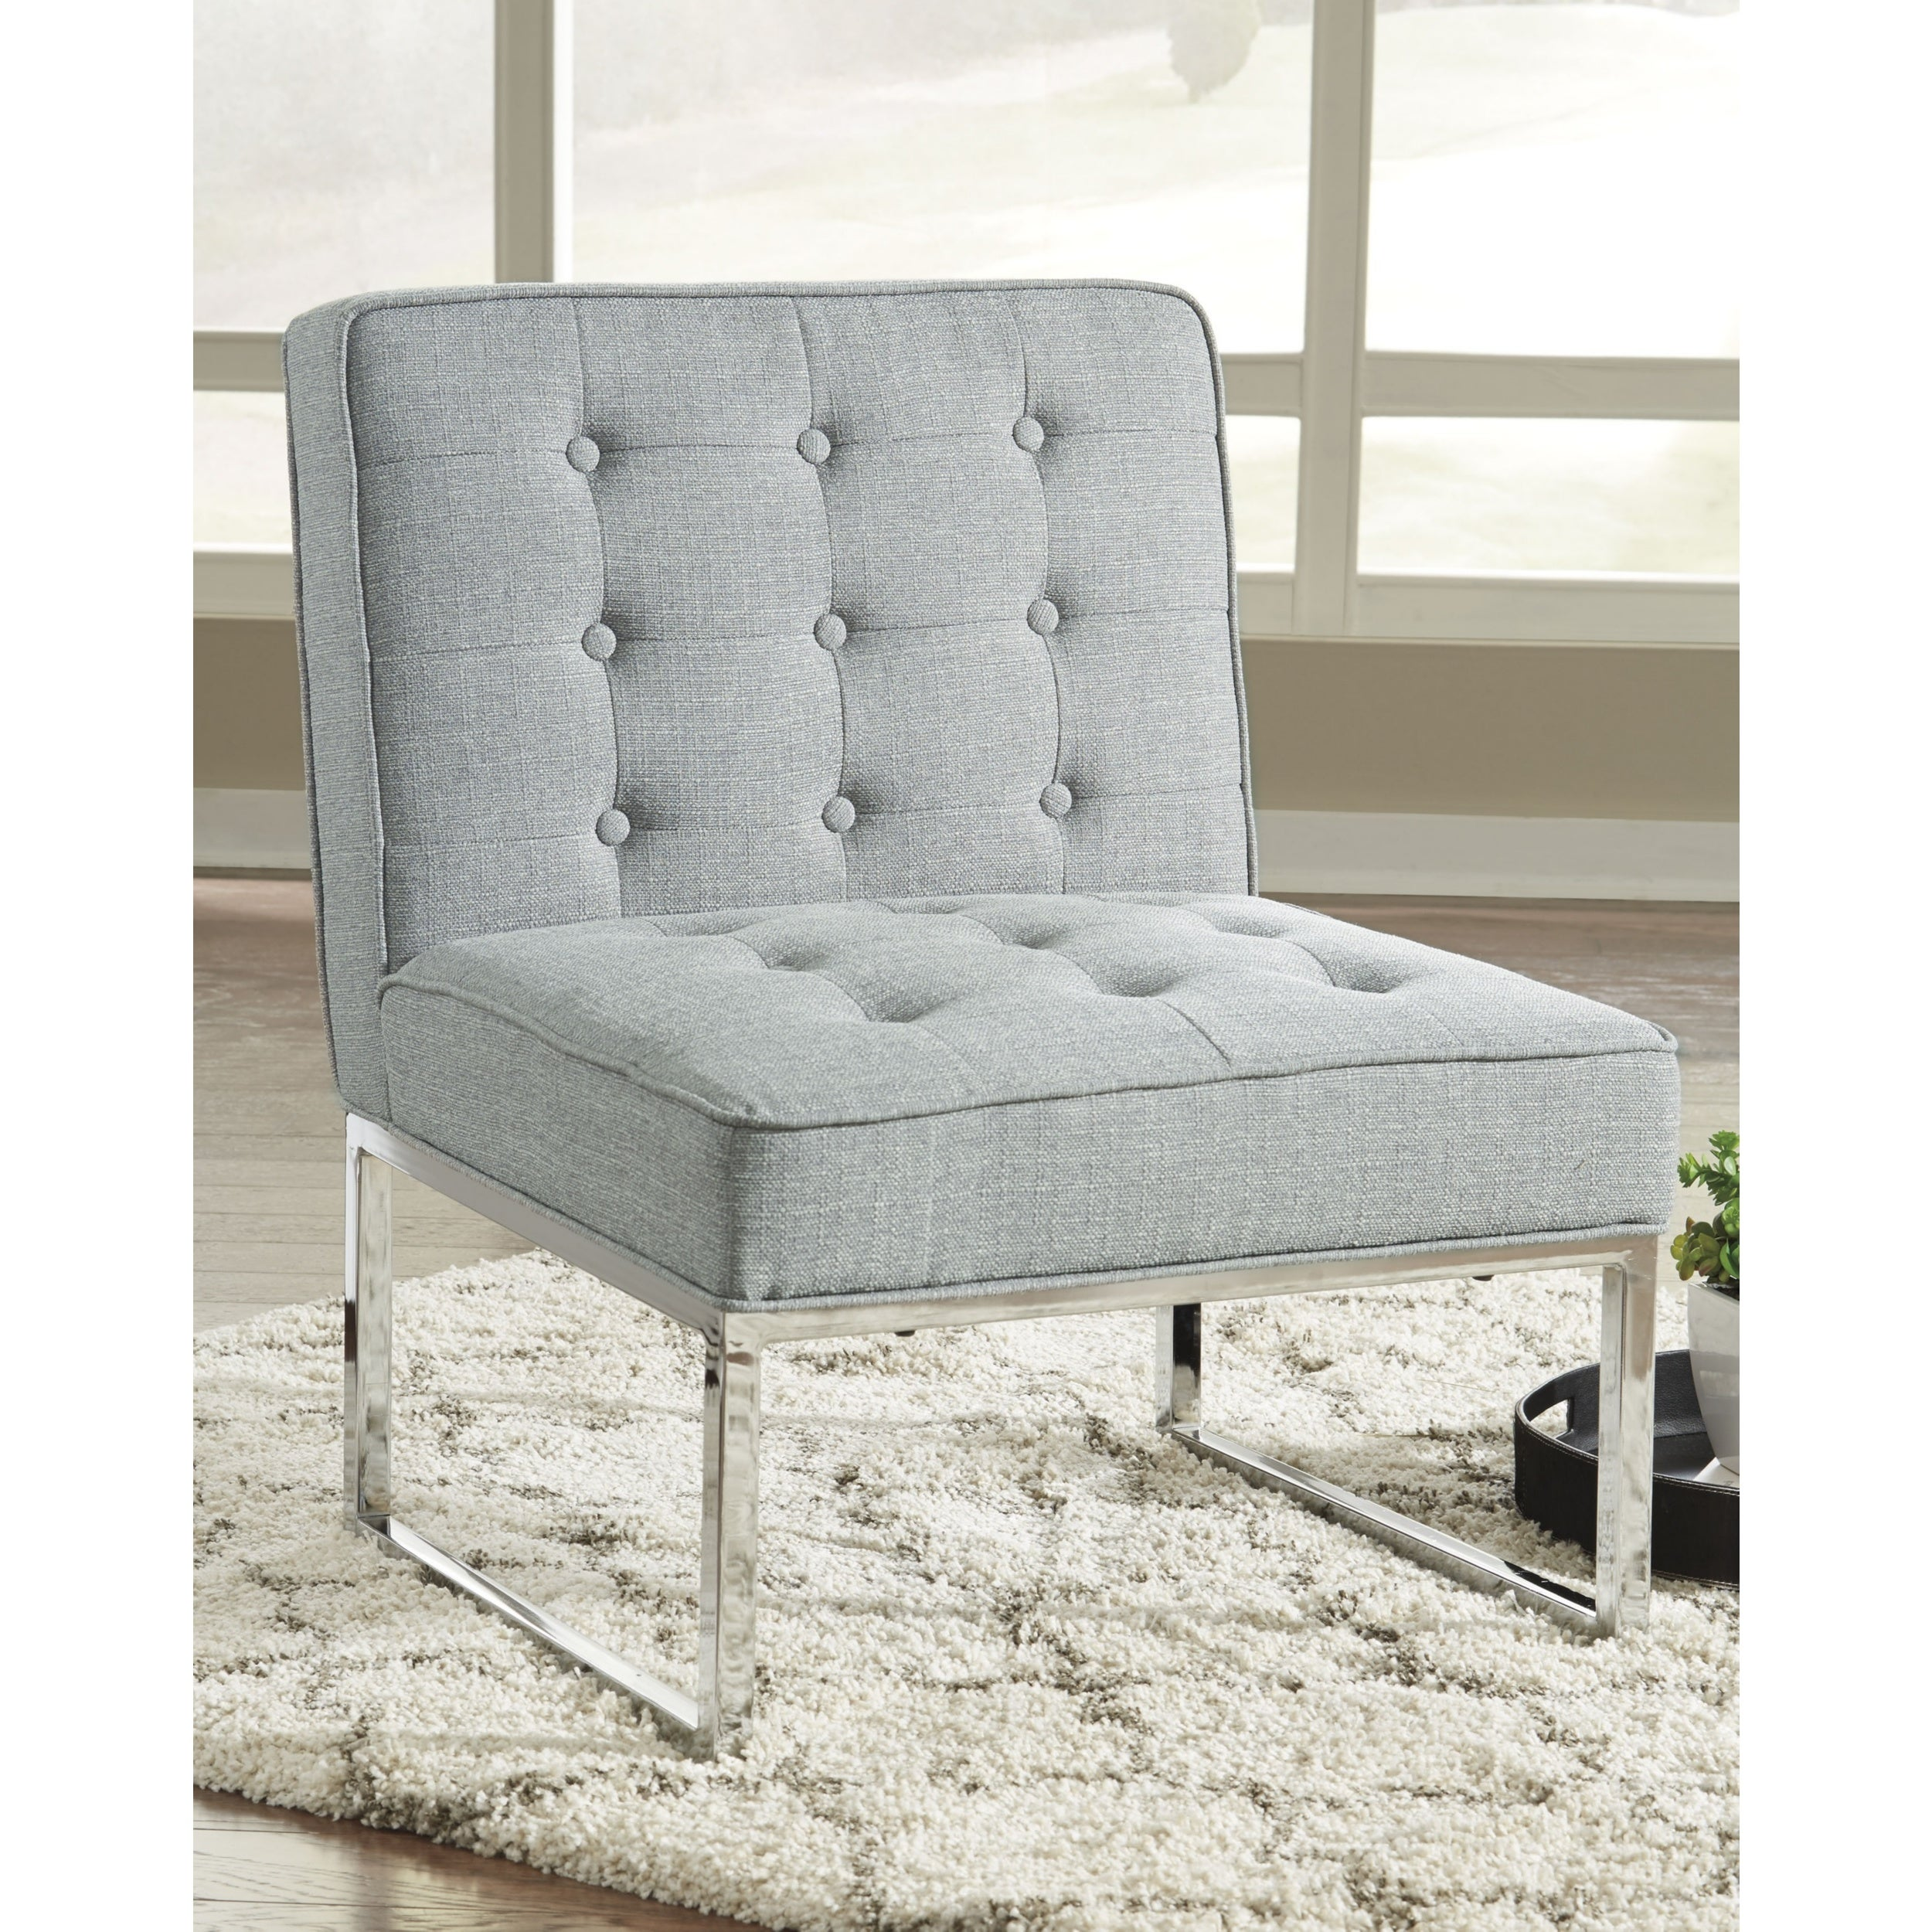 Terrific Cimarosse Contemporary Gray Accent Chair With Chrome Toned Metal Legs Andrewgaddart Wooden Chair Designs For Living Room Andrewgaddartcom